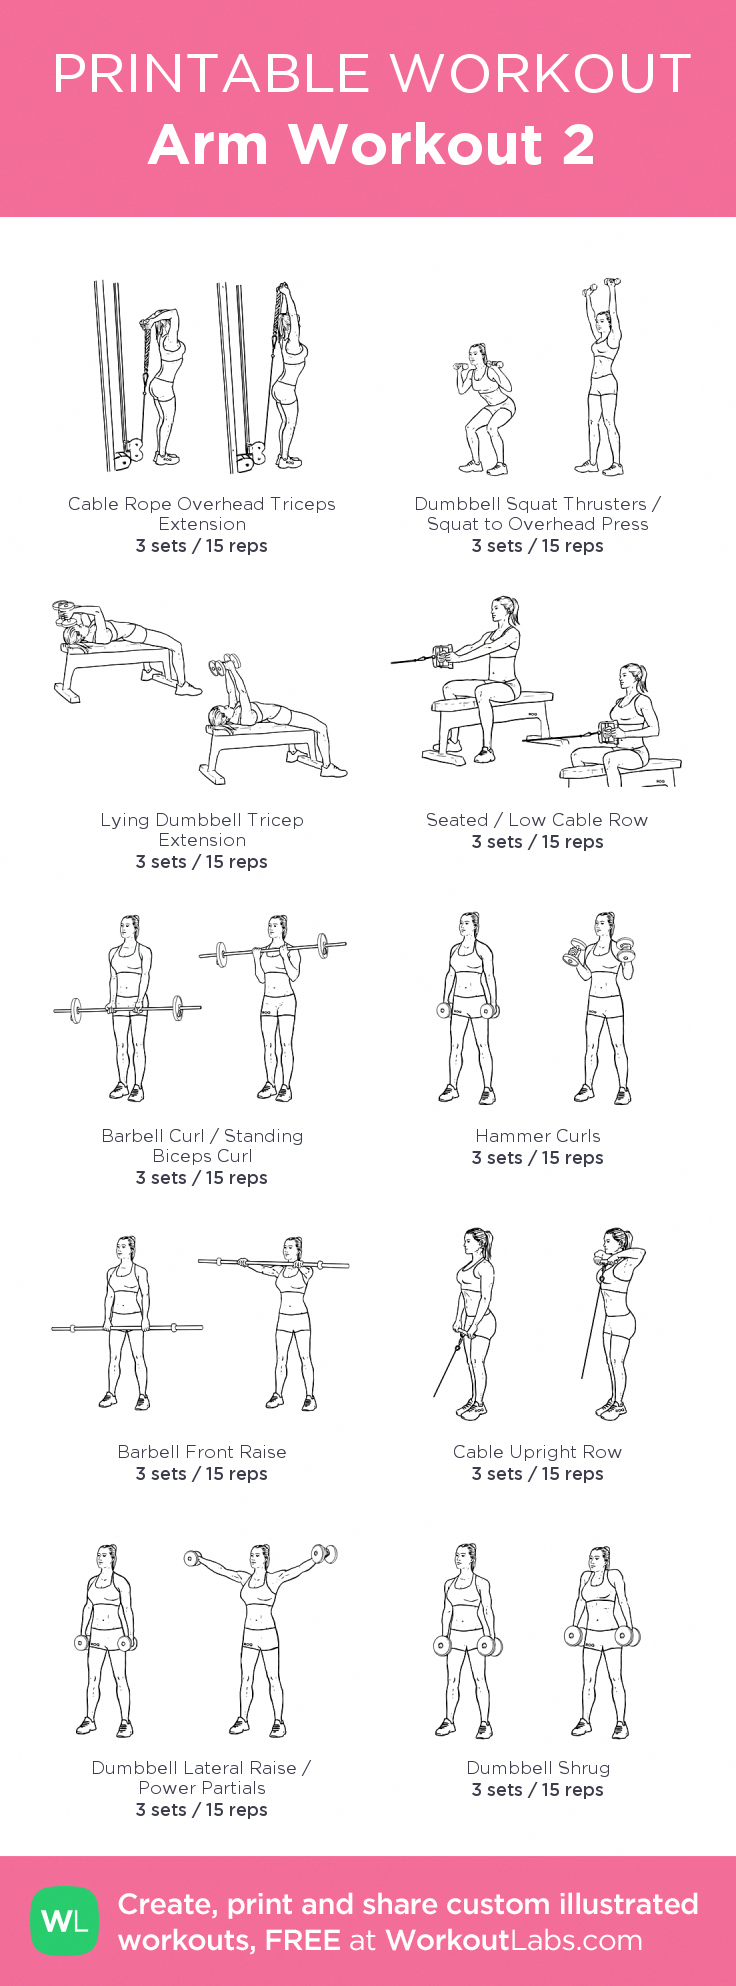 Arm Workout 2: created at WorkoutLabs.com #NoEquipmentArmWorkouts #beginnerarmworkouts Arm Workout 2: created at WorkoutLabs.com #NoEquipmentArmWorkouts #beginnerarmworkouts